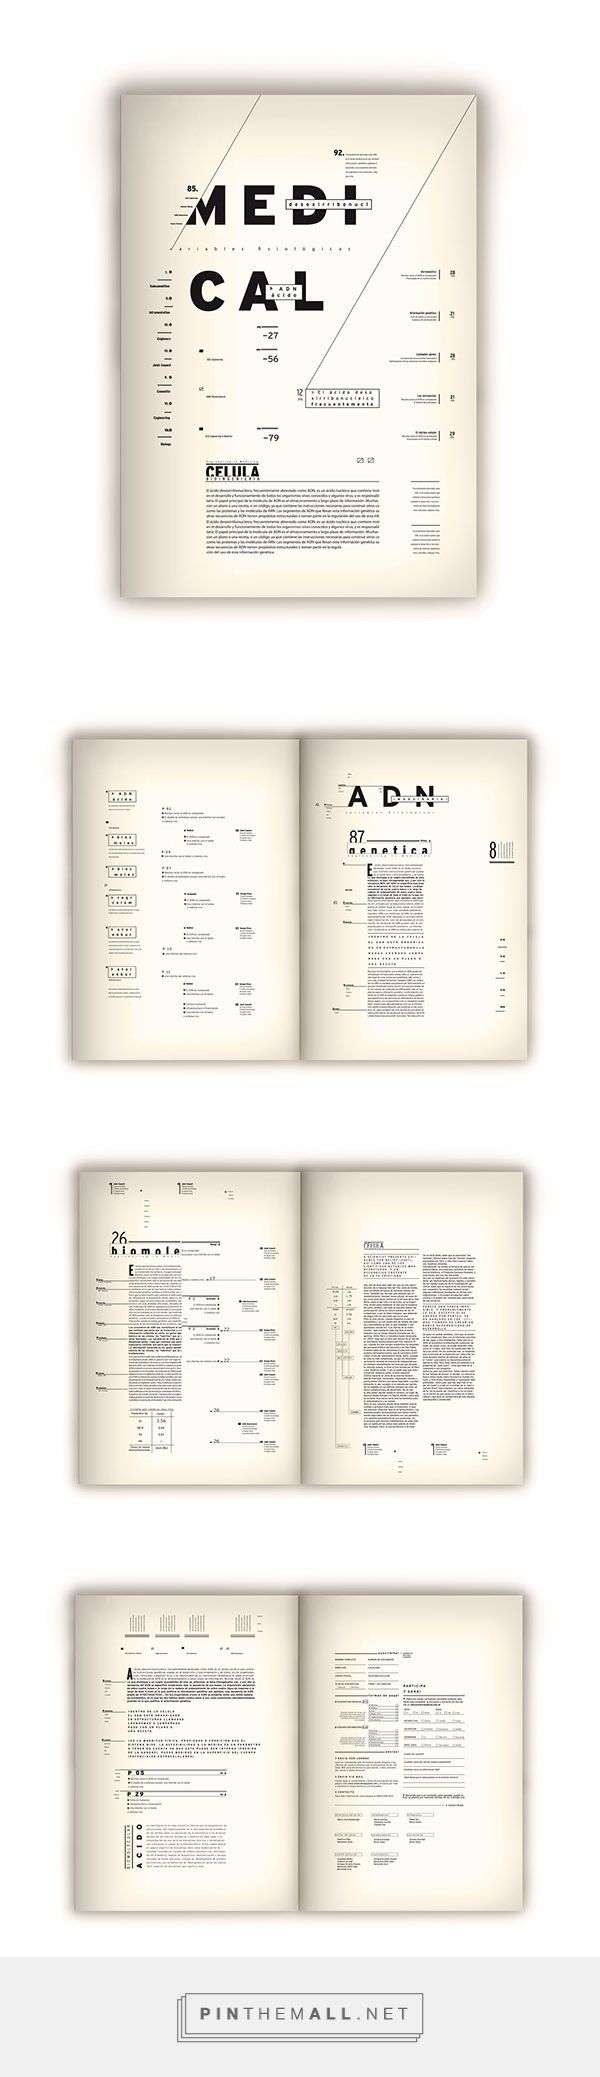 Programa Editorial -Medical- on Behance... - a grouped images picture - Pin Them All